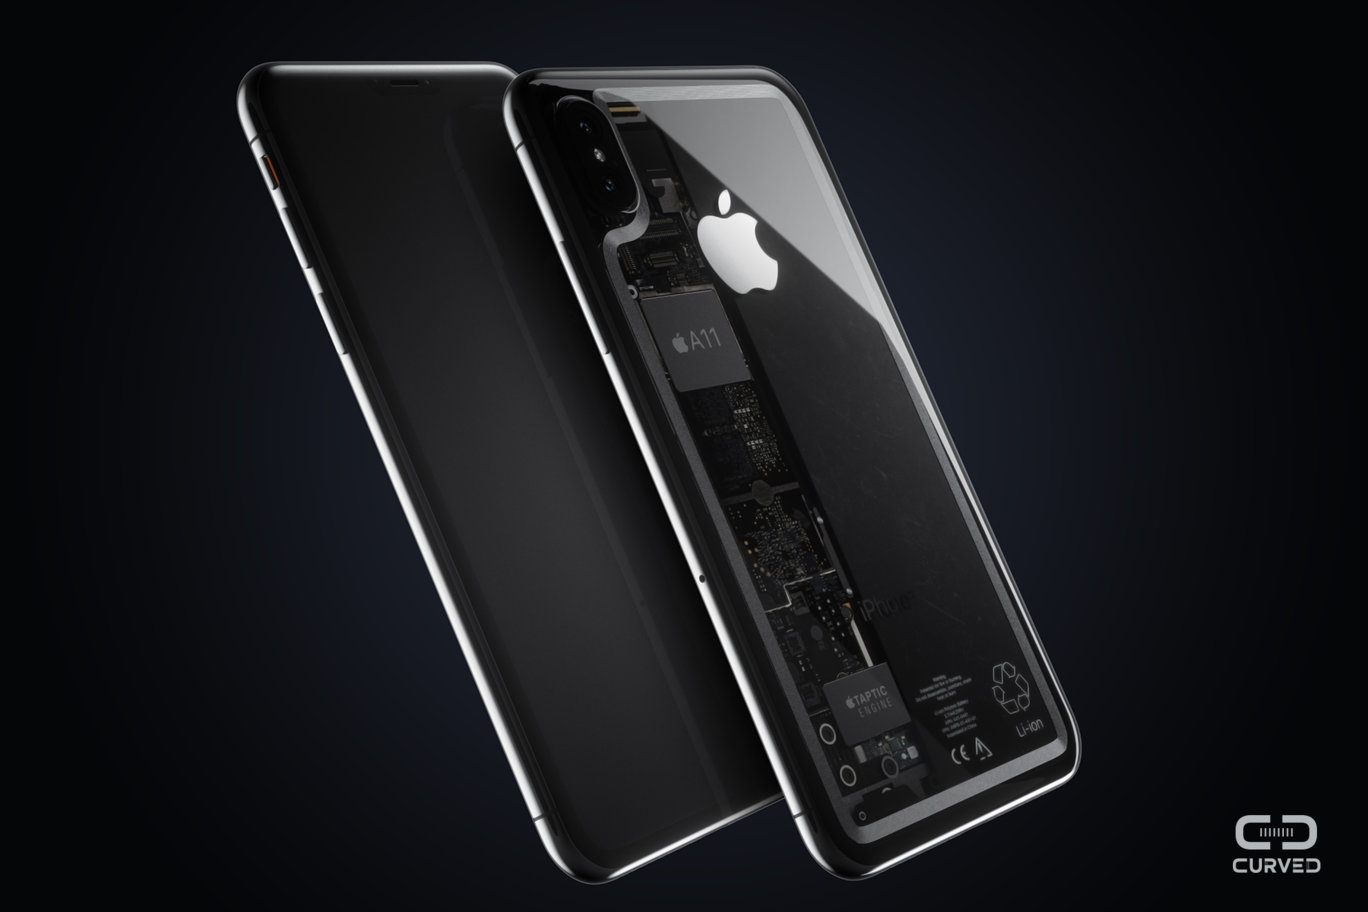 New video concept of Transparent edition of iPhone 8 which looks stunning and is the perfect reversion of iMac, Gameboy etc